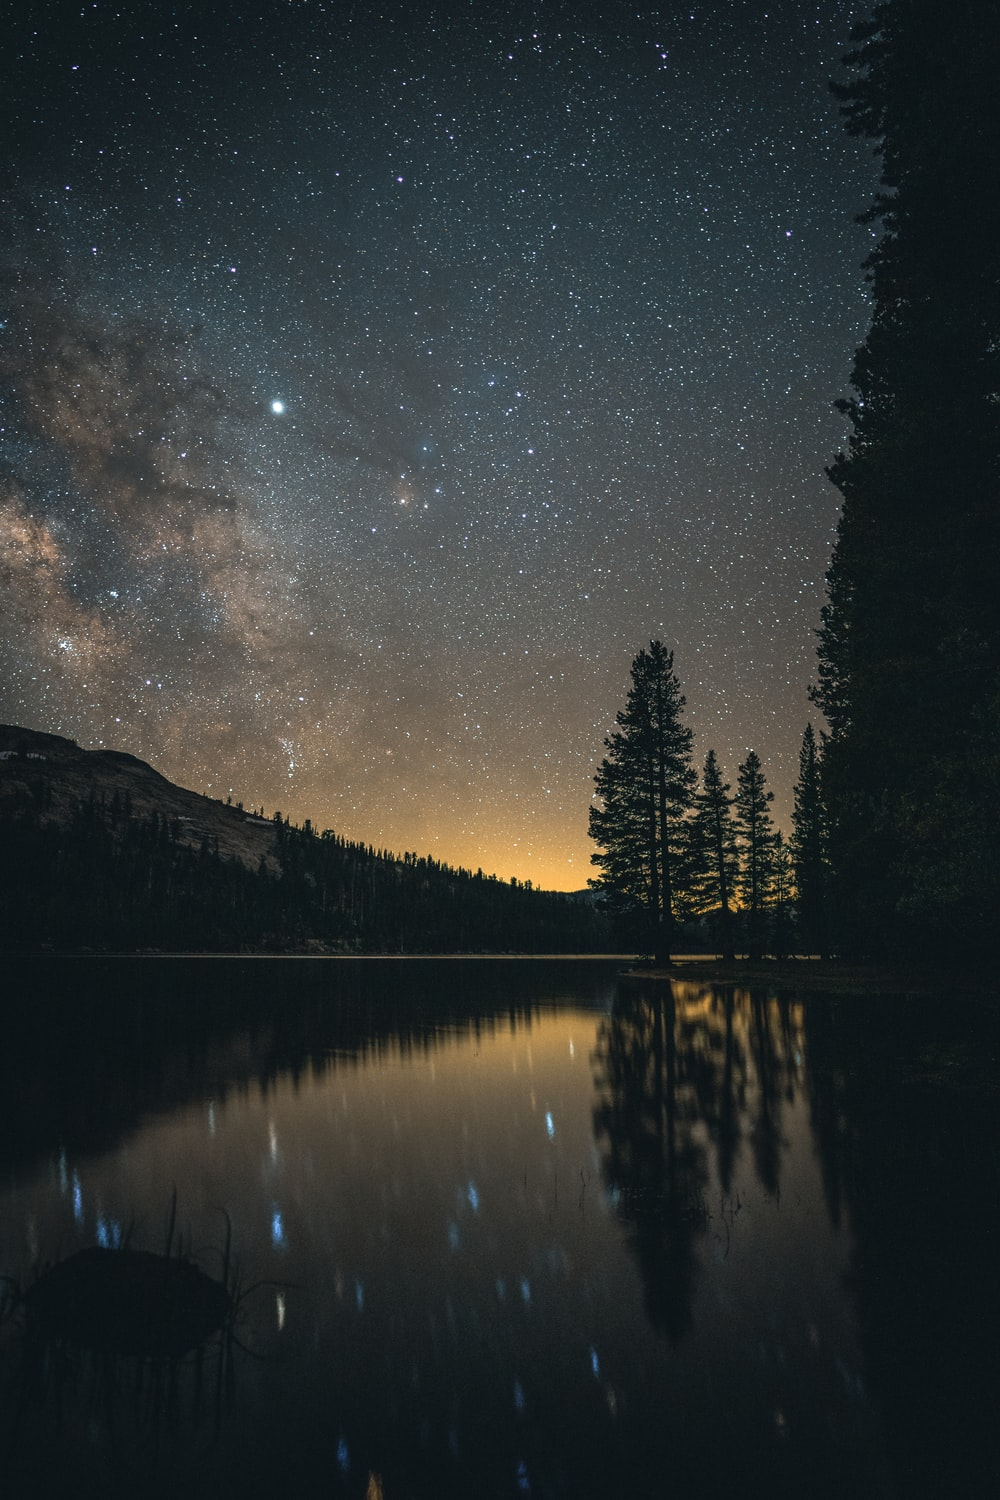 tall trees near body of water at nighttime